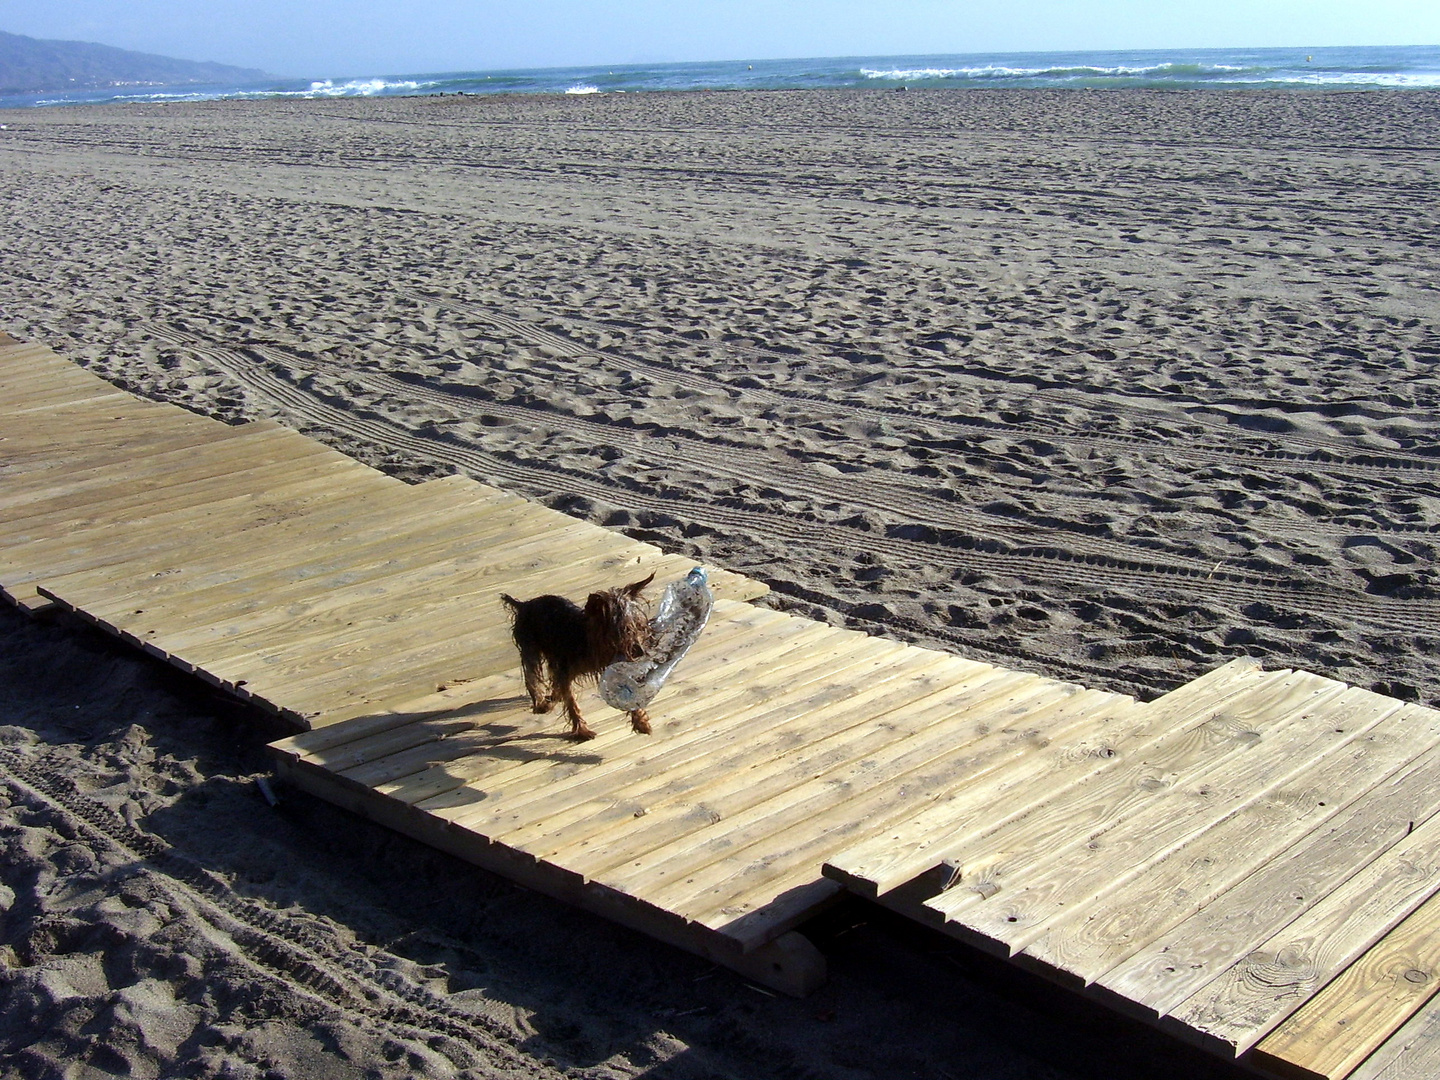 dog on the catwalk